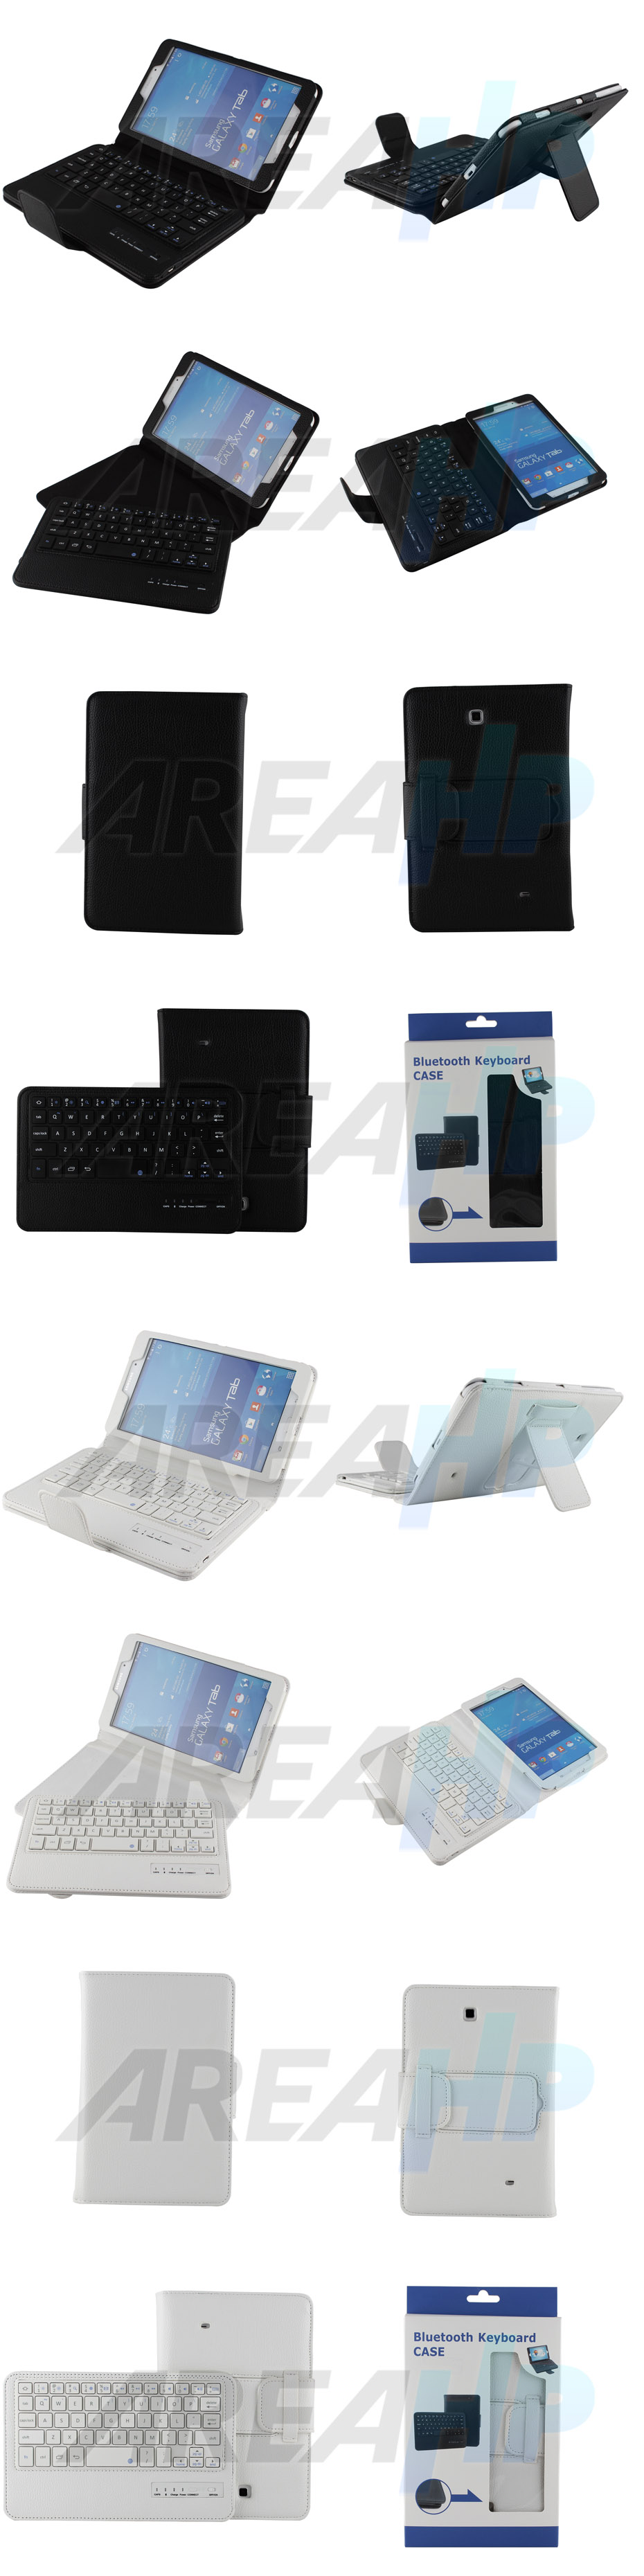 Removable Keyboard Leather Case for Samsung Galaxy Tab4 7.0 Overview